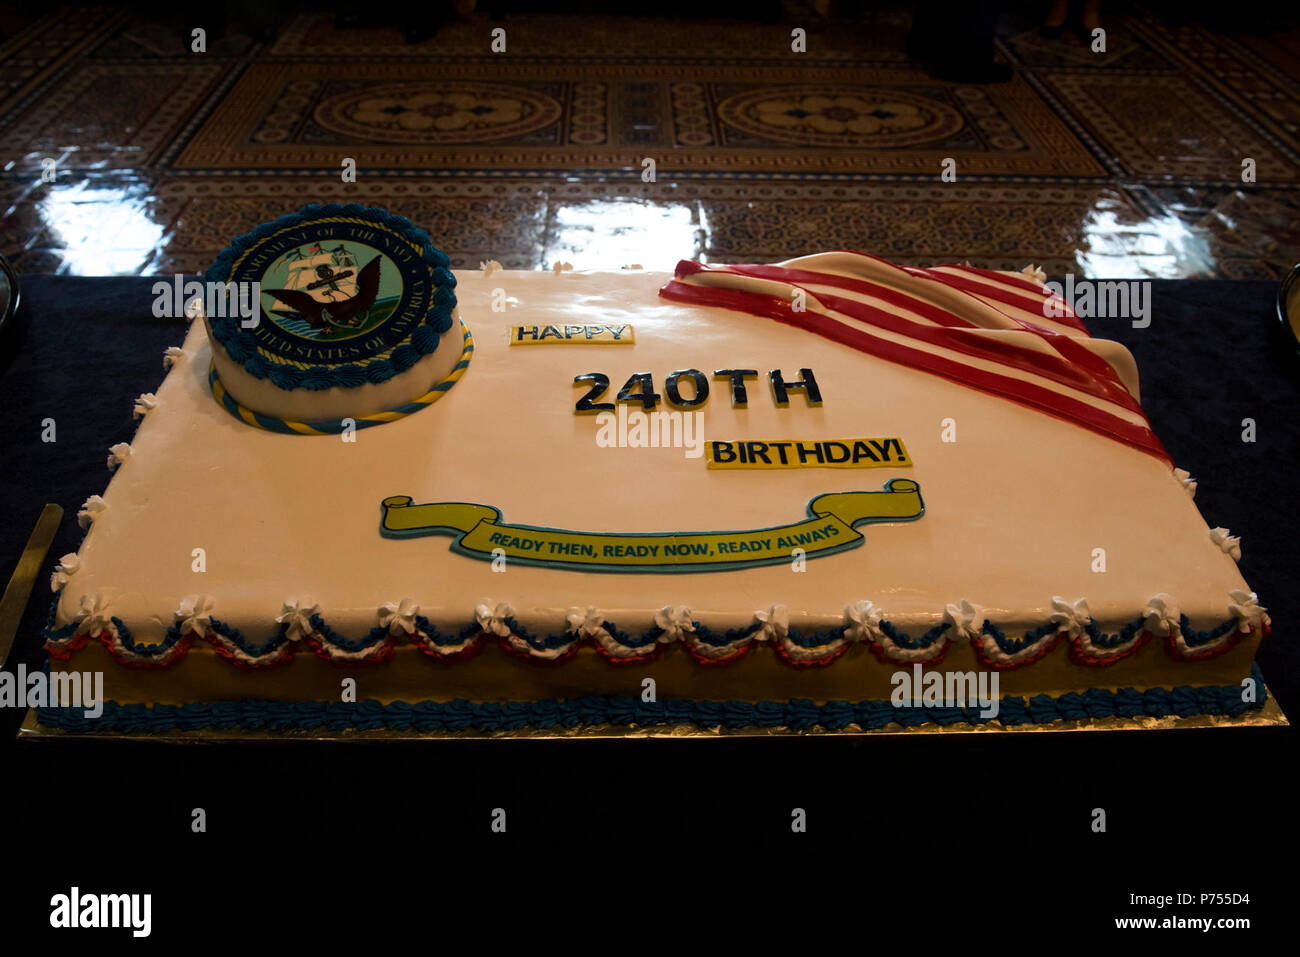 Washington Dc October 13 2015 The Cake For The Navy Birthday